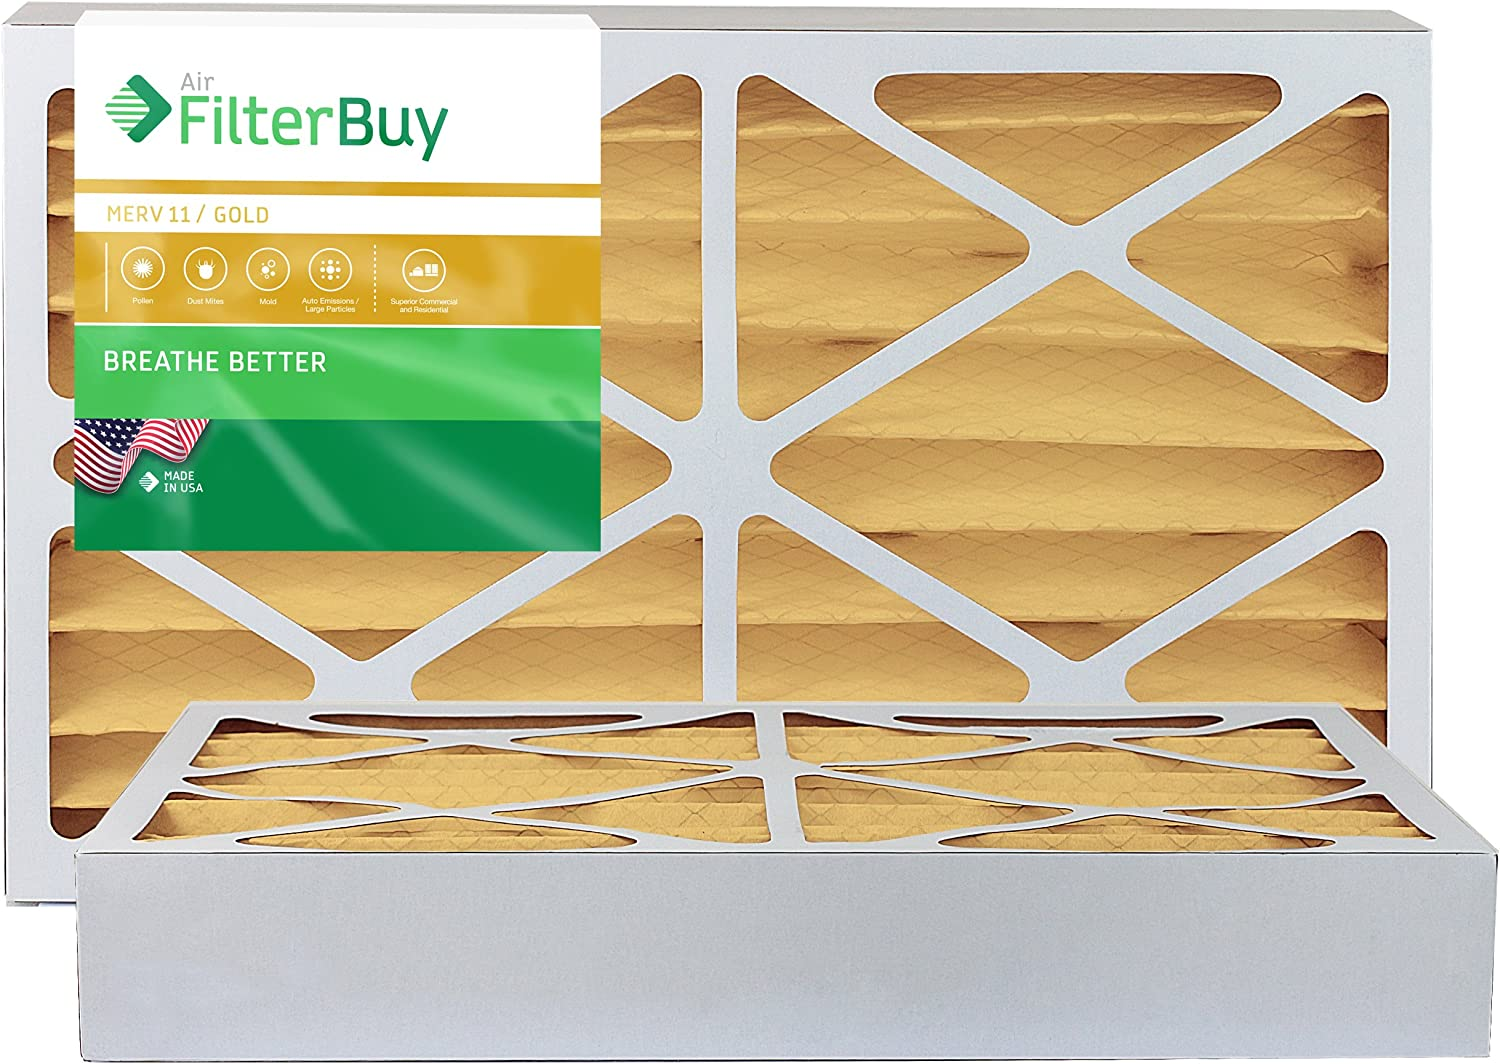 FilterBuy 16x20x4 MERV 11 Pleated AC Furnace Air Filter, (Pack of 2 Filters), 16x20x4 – Gold